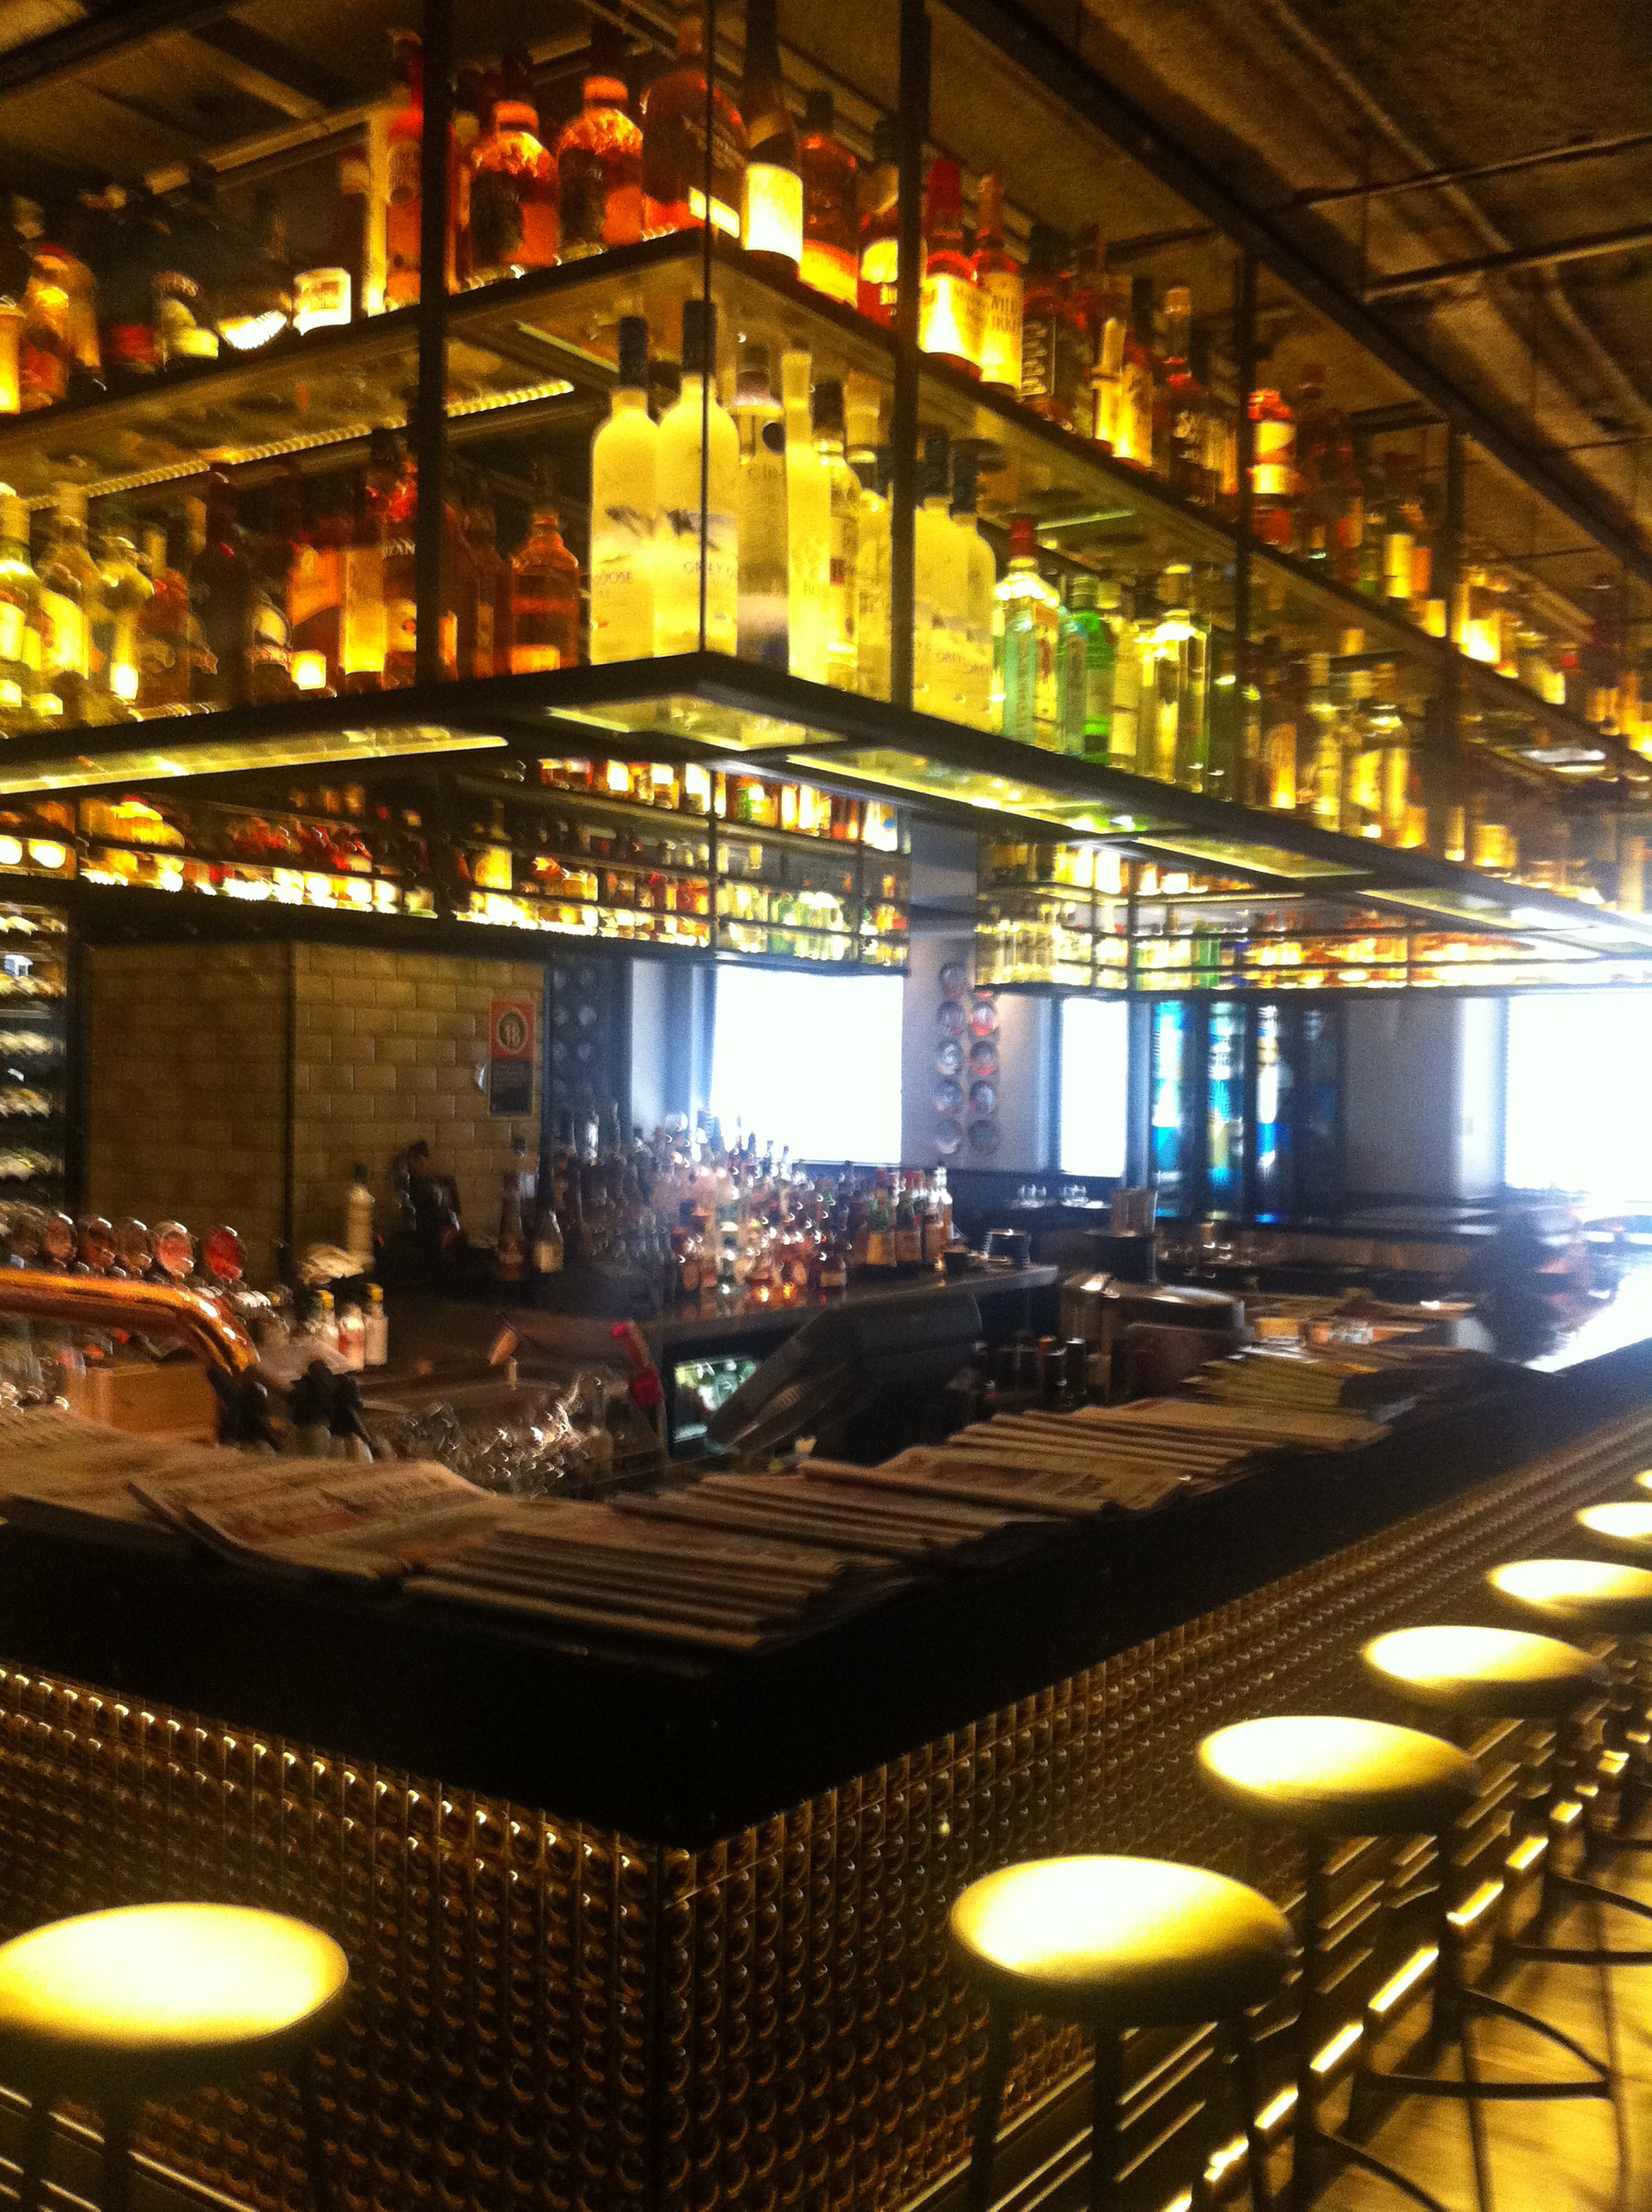 Gowings bar grill sydney - Restaurant bar and grill ...